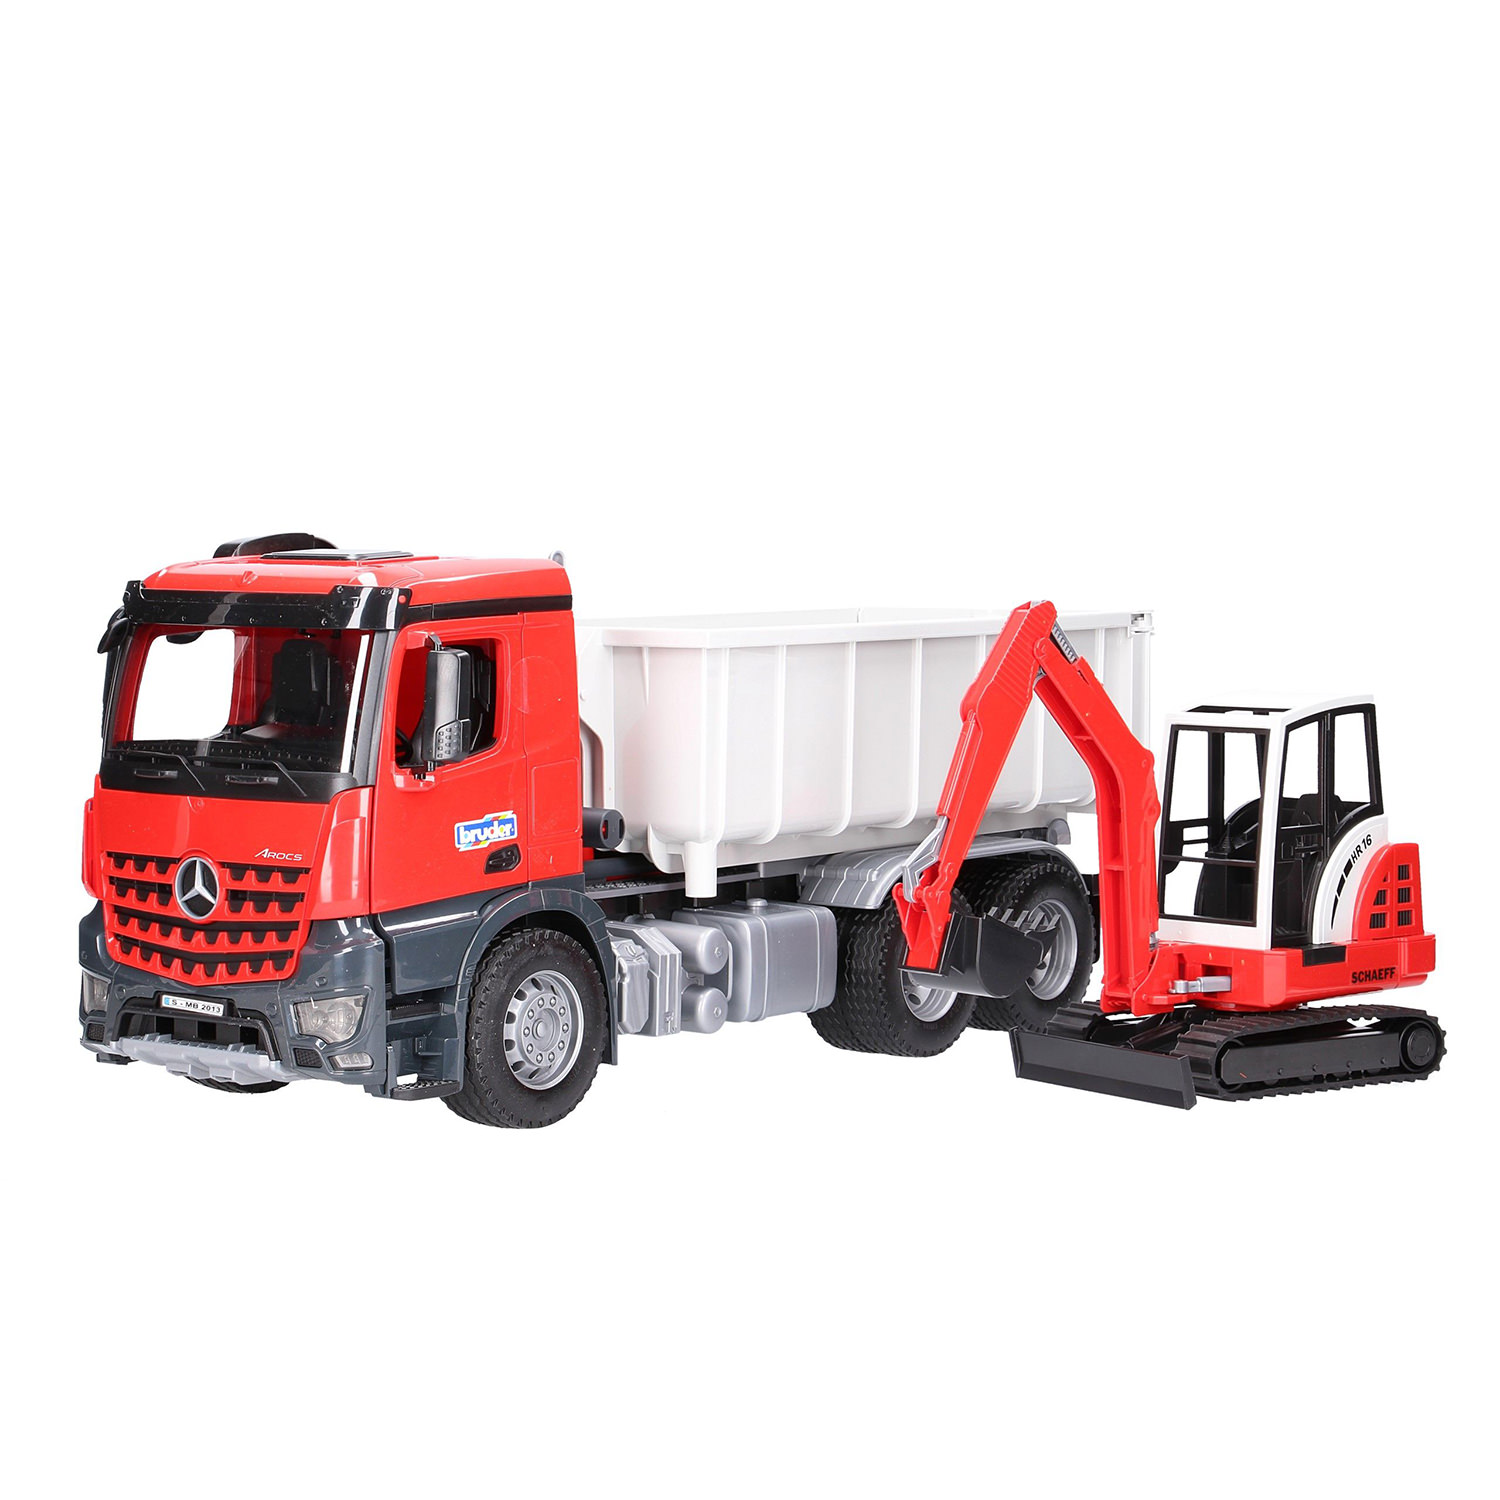 926e48039d45 Bruder 1/16 Mercedes Benz Arocs Truck with Roll Off Container and Excavator